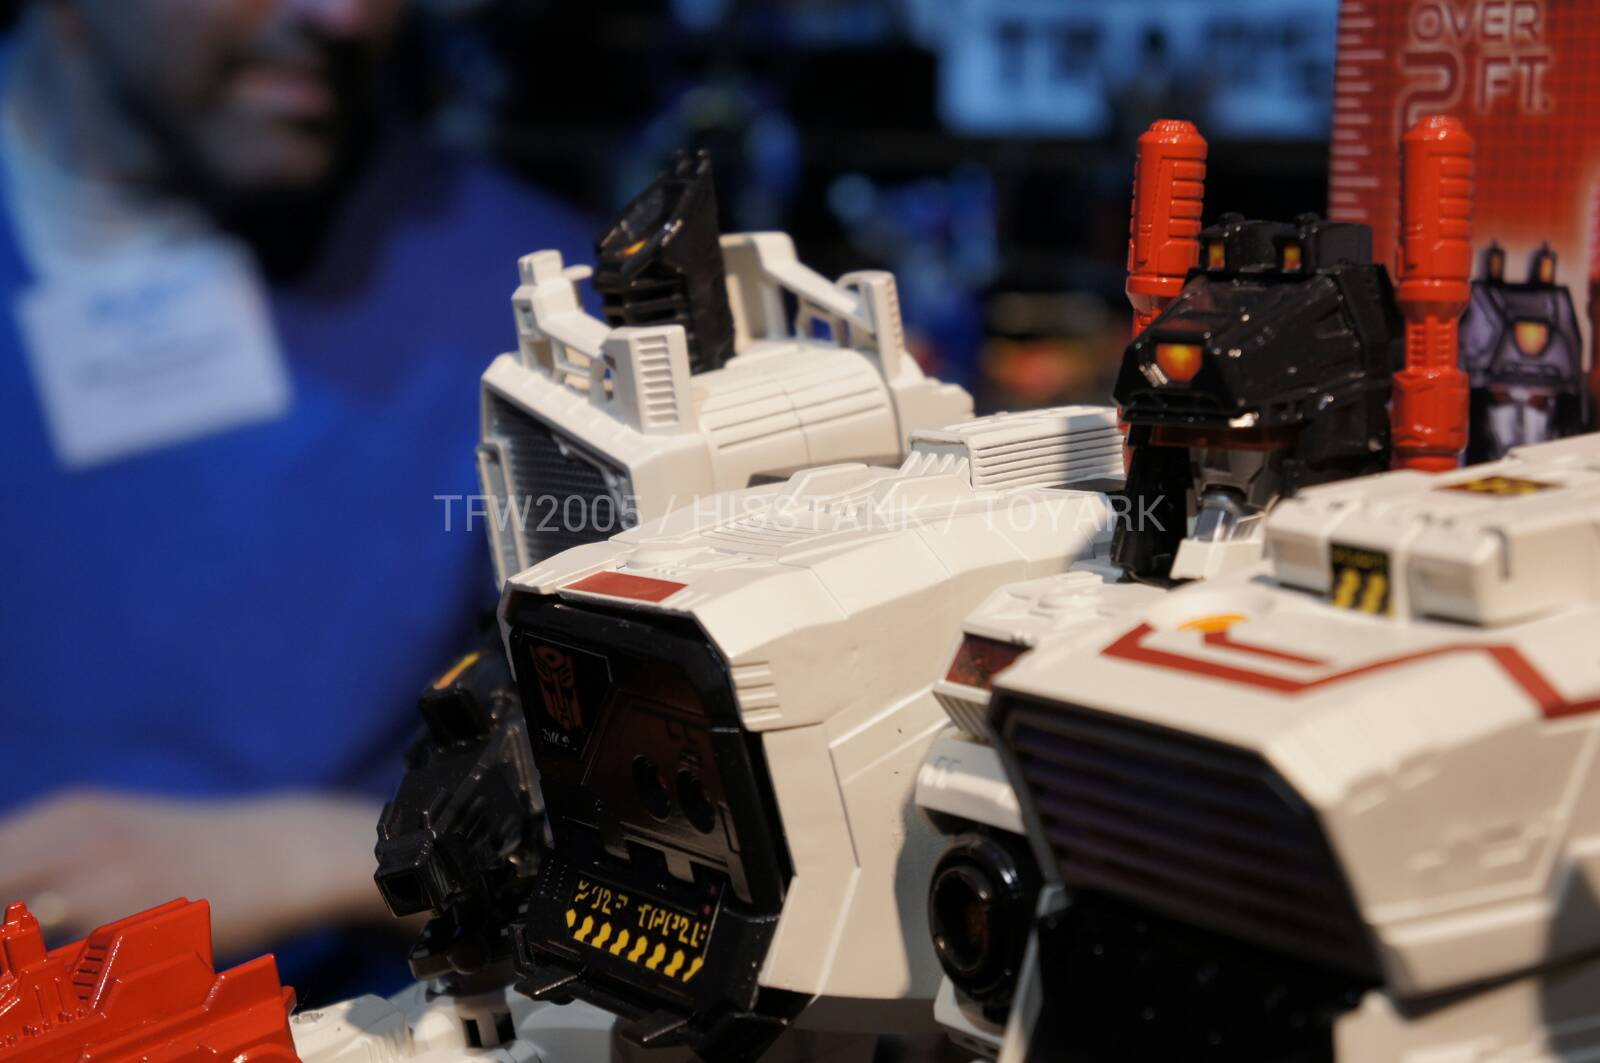 Transformers-Metroplex-Toy-Fair-2013-005